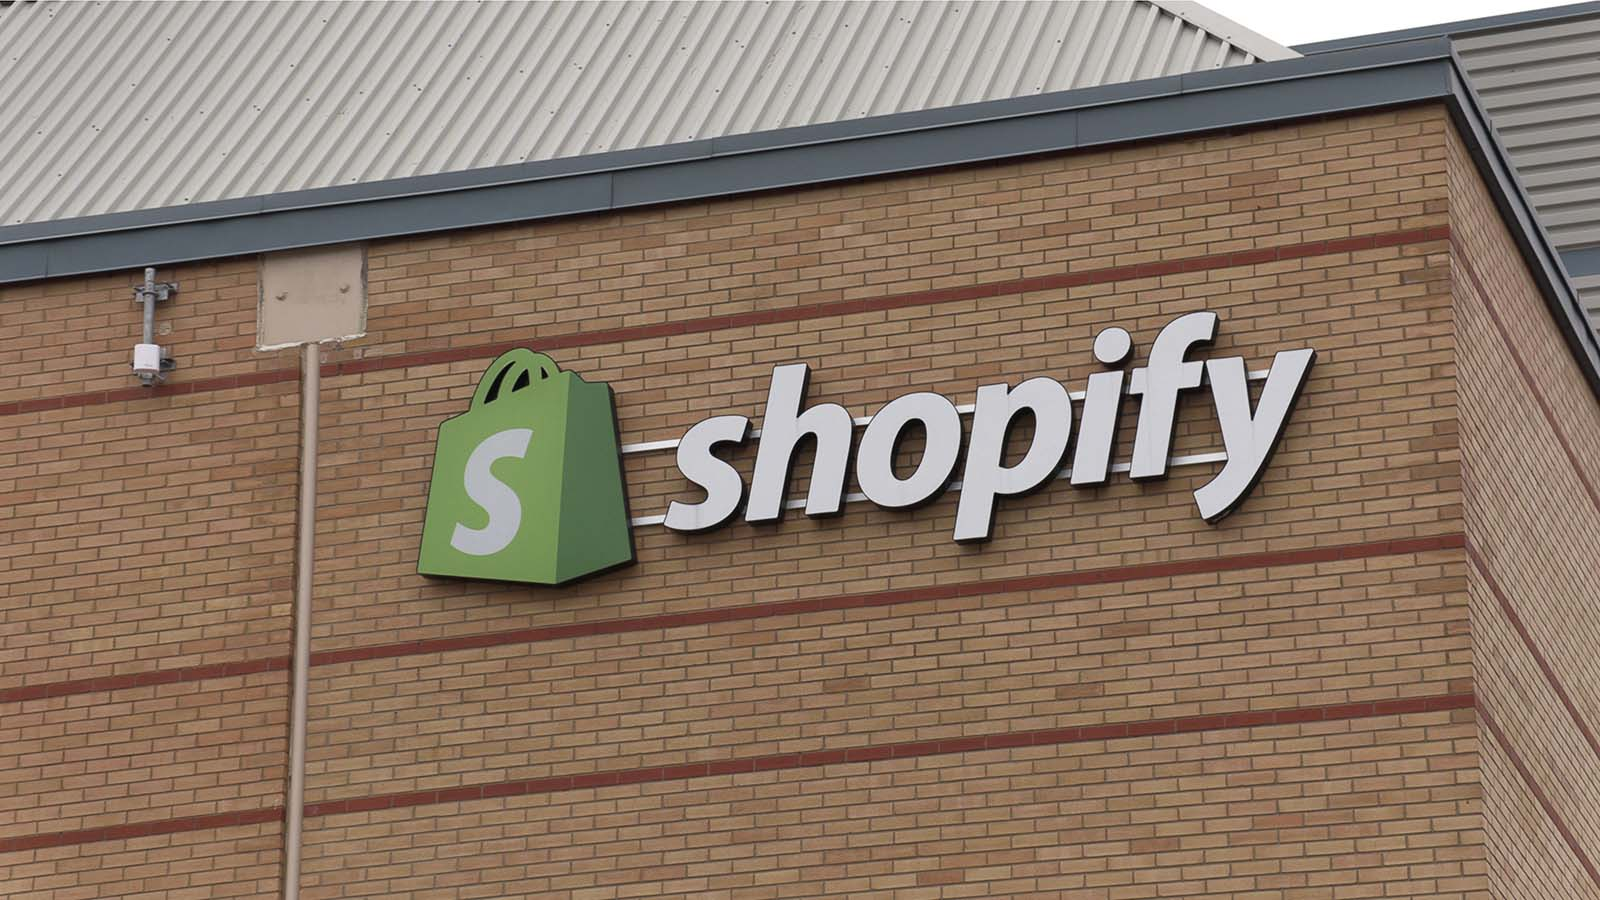 Shopify Stock Is Stuck In A Tug Of War Between Valuation And Momentum Investorplace